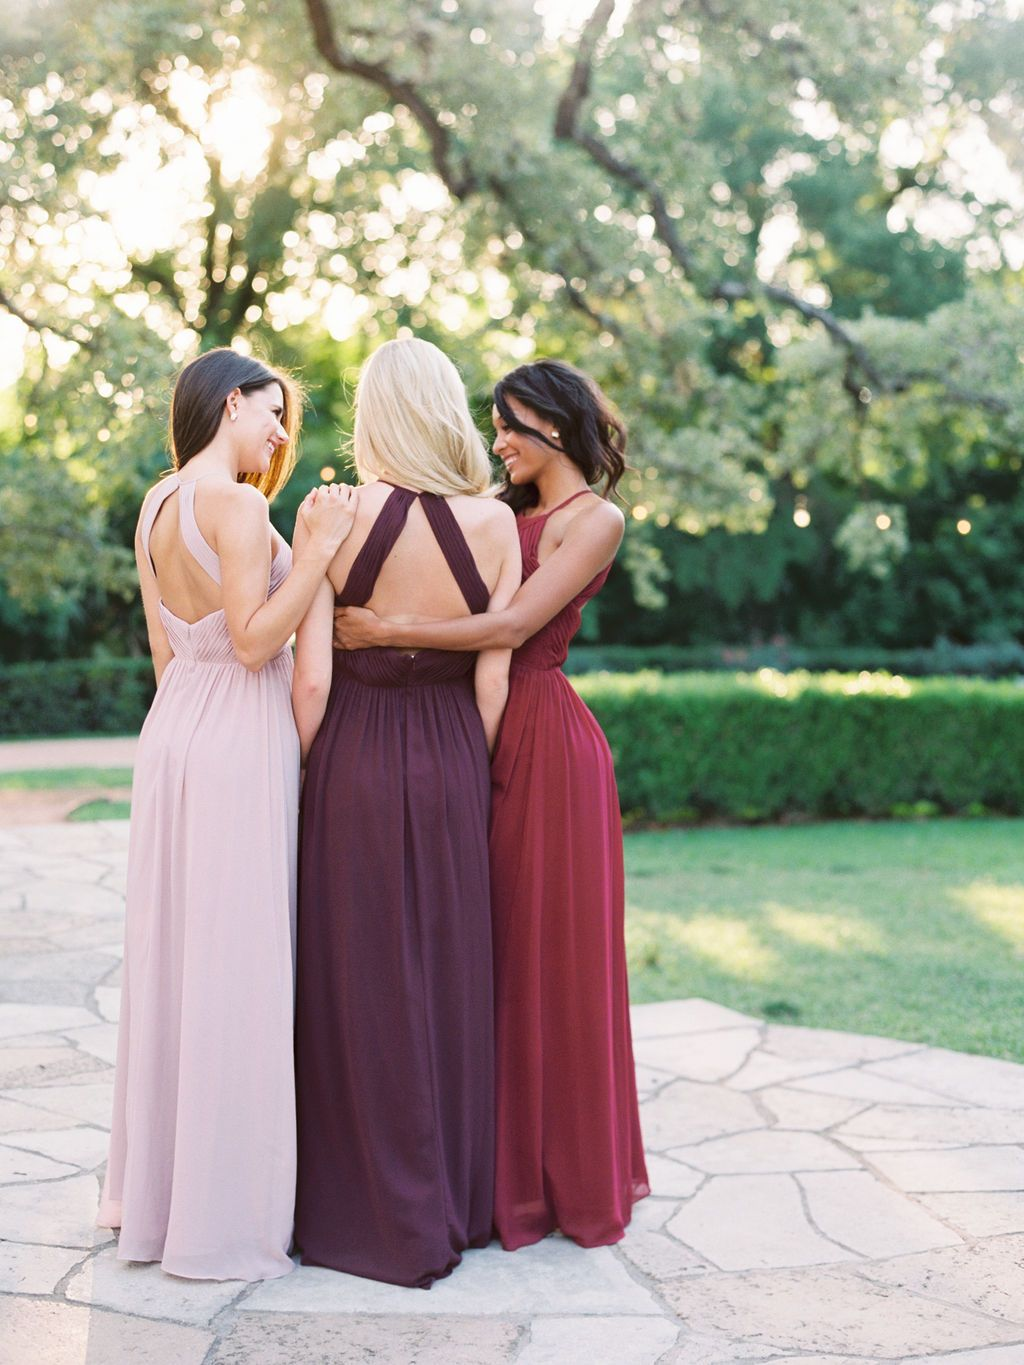 Mix And Match Revelry Bridesmaid Dresses And Separates Revelry Has A Wide Selection Of Unique Brides Bridesmaid Dresses Bridesmaid Bridesmaid Dresses Separates